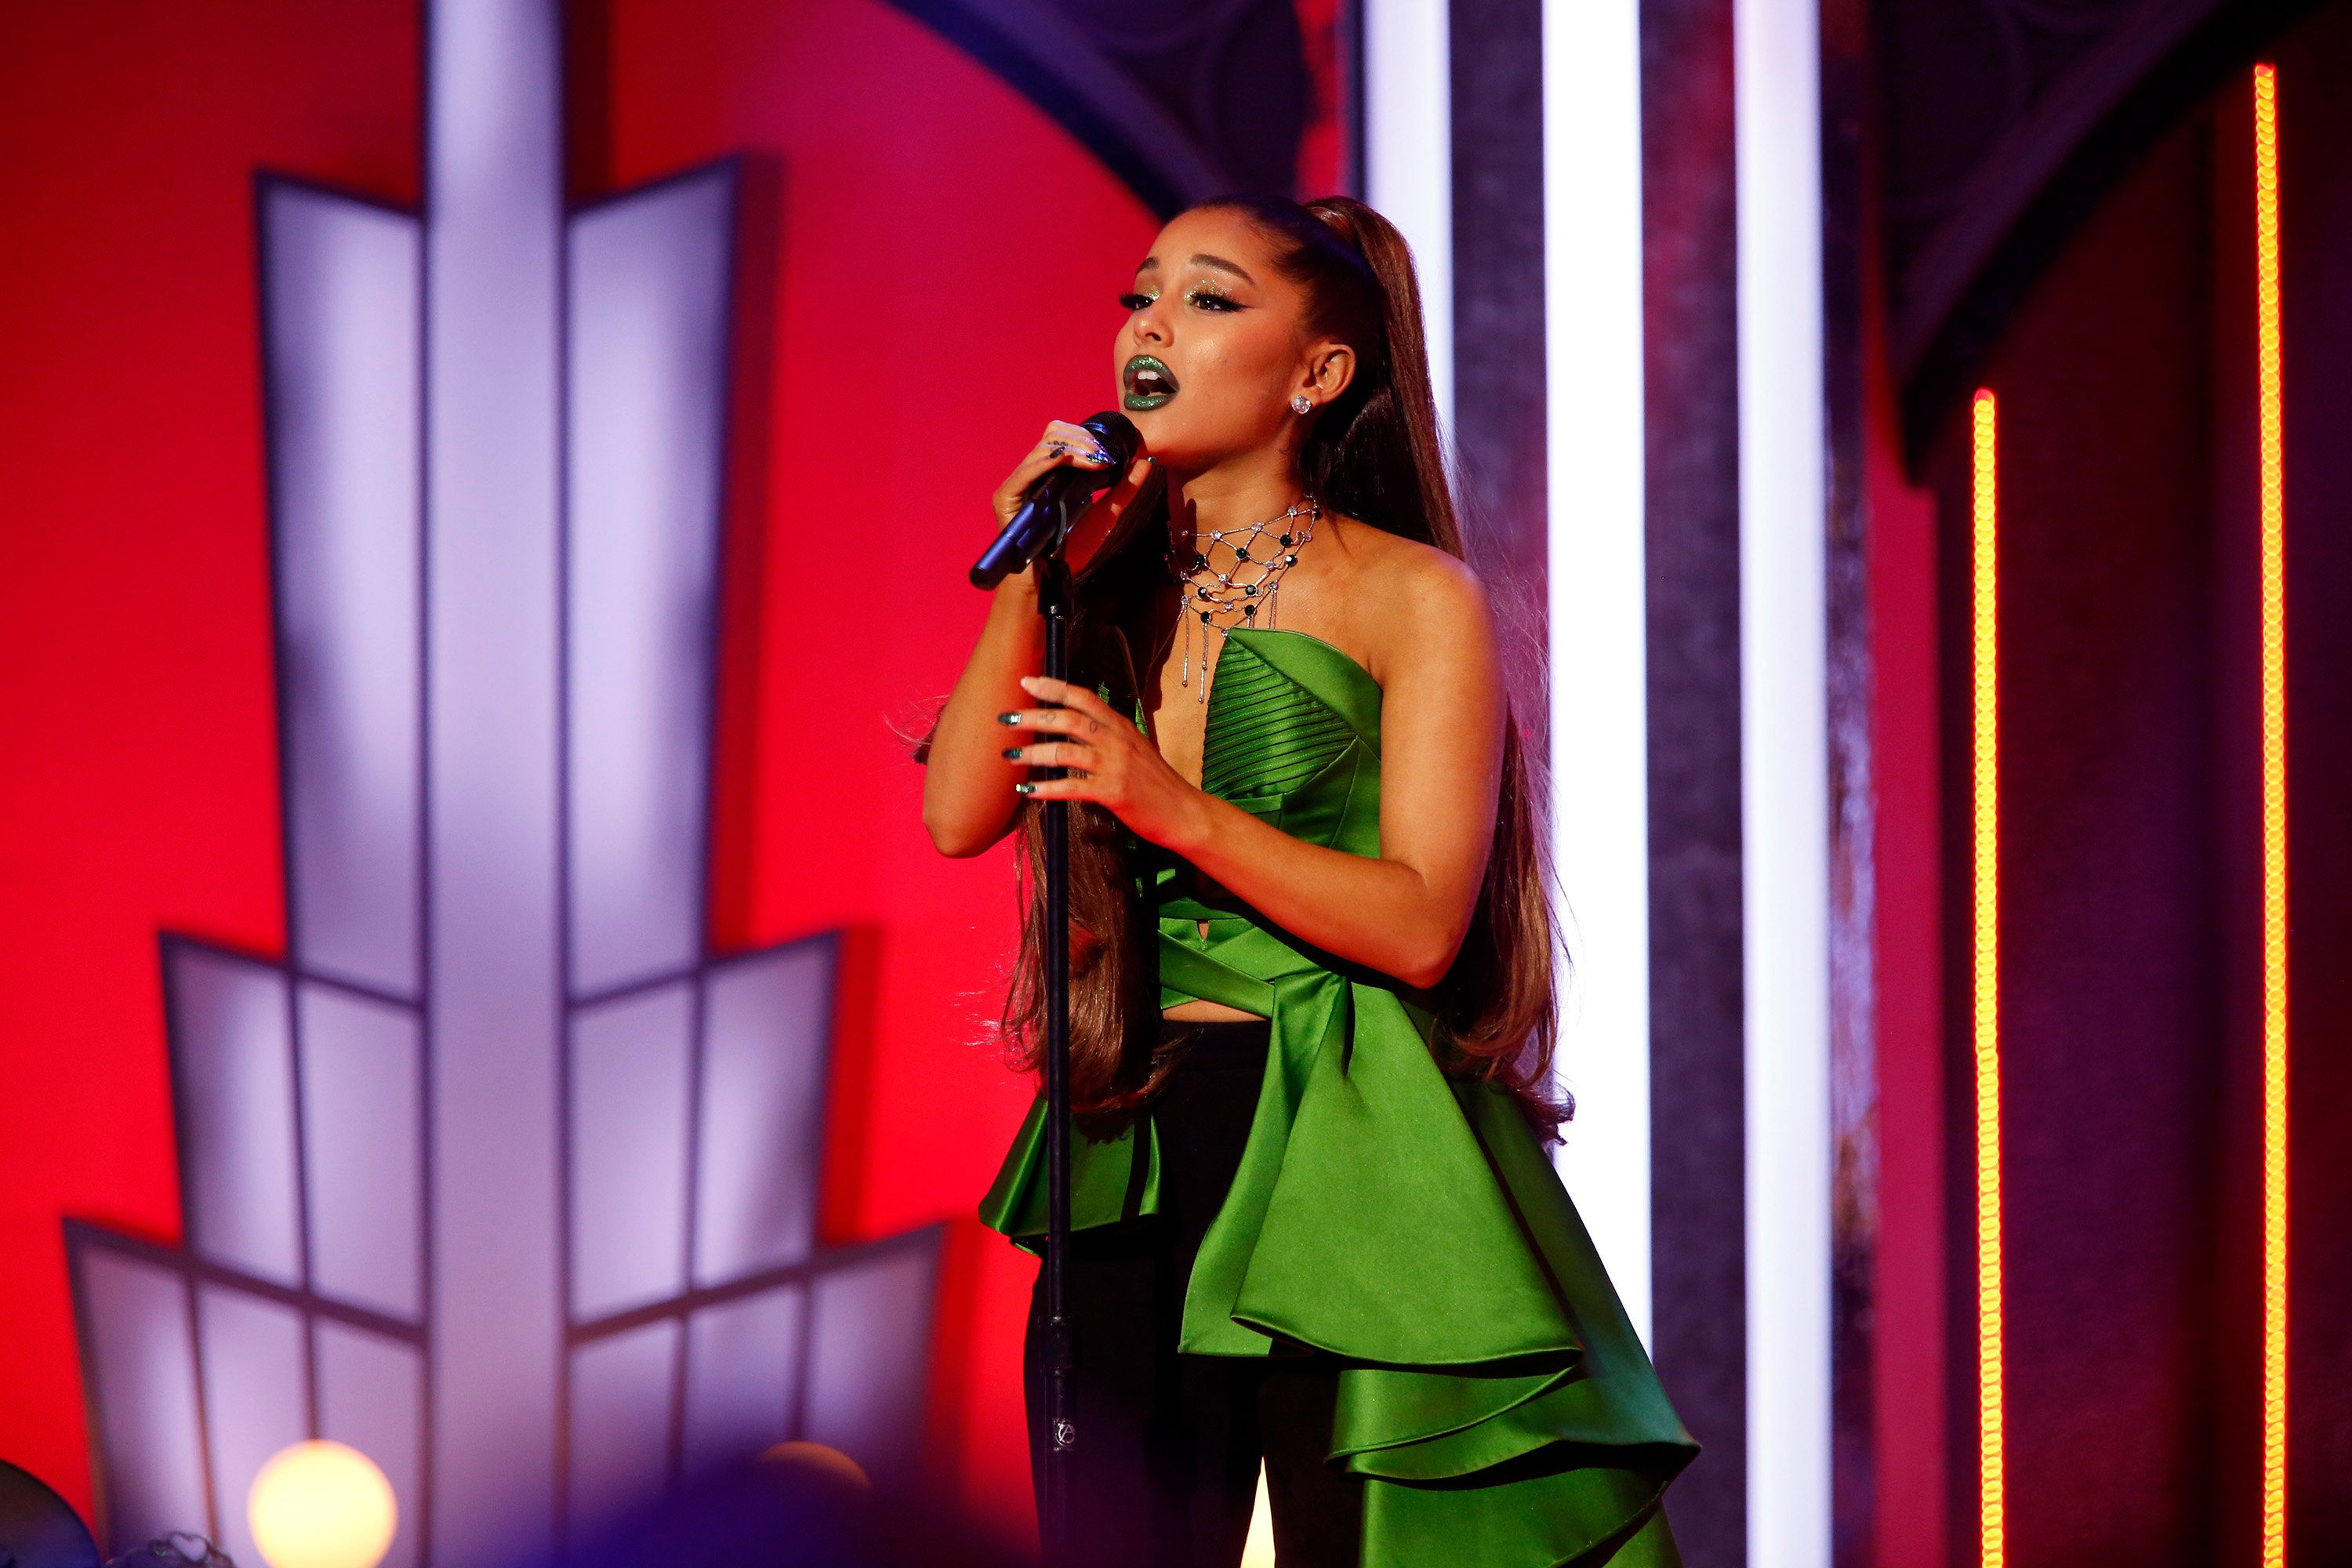 Ariana Grande is not here for Pete Davidson's jokes about their break-up